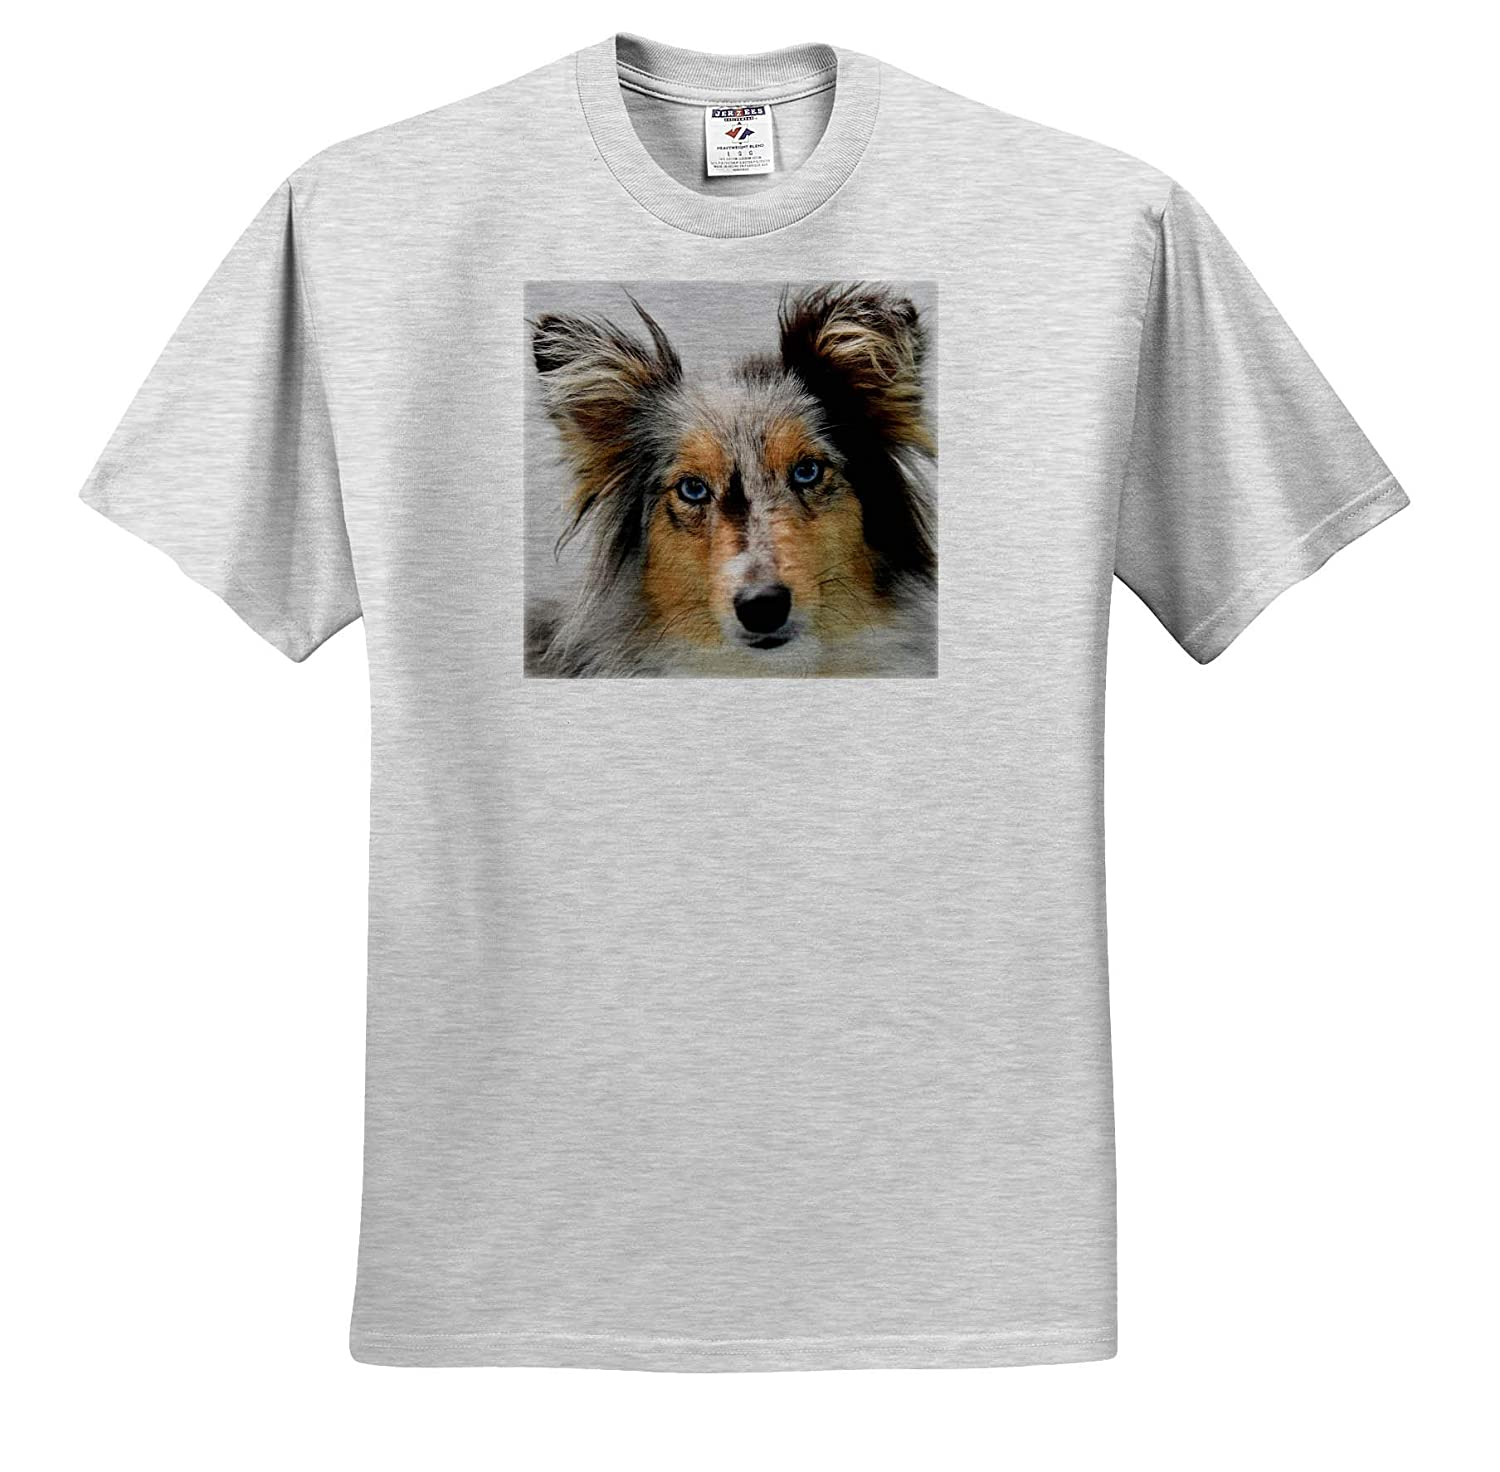 Portrait of a Australian Shepherd Dog Doglover ts/_319044 3dRose Sven Herkenrath Dog Adult T-Shirt XL